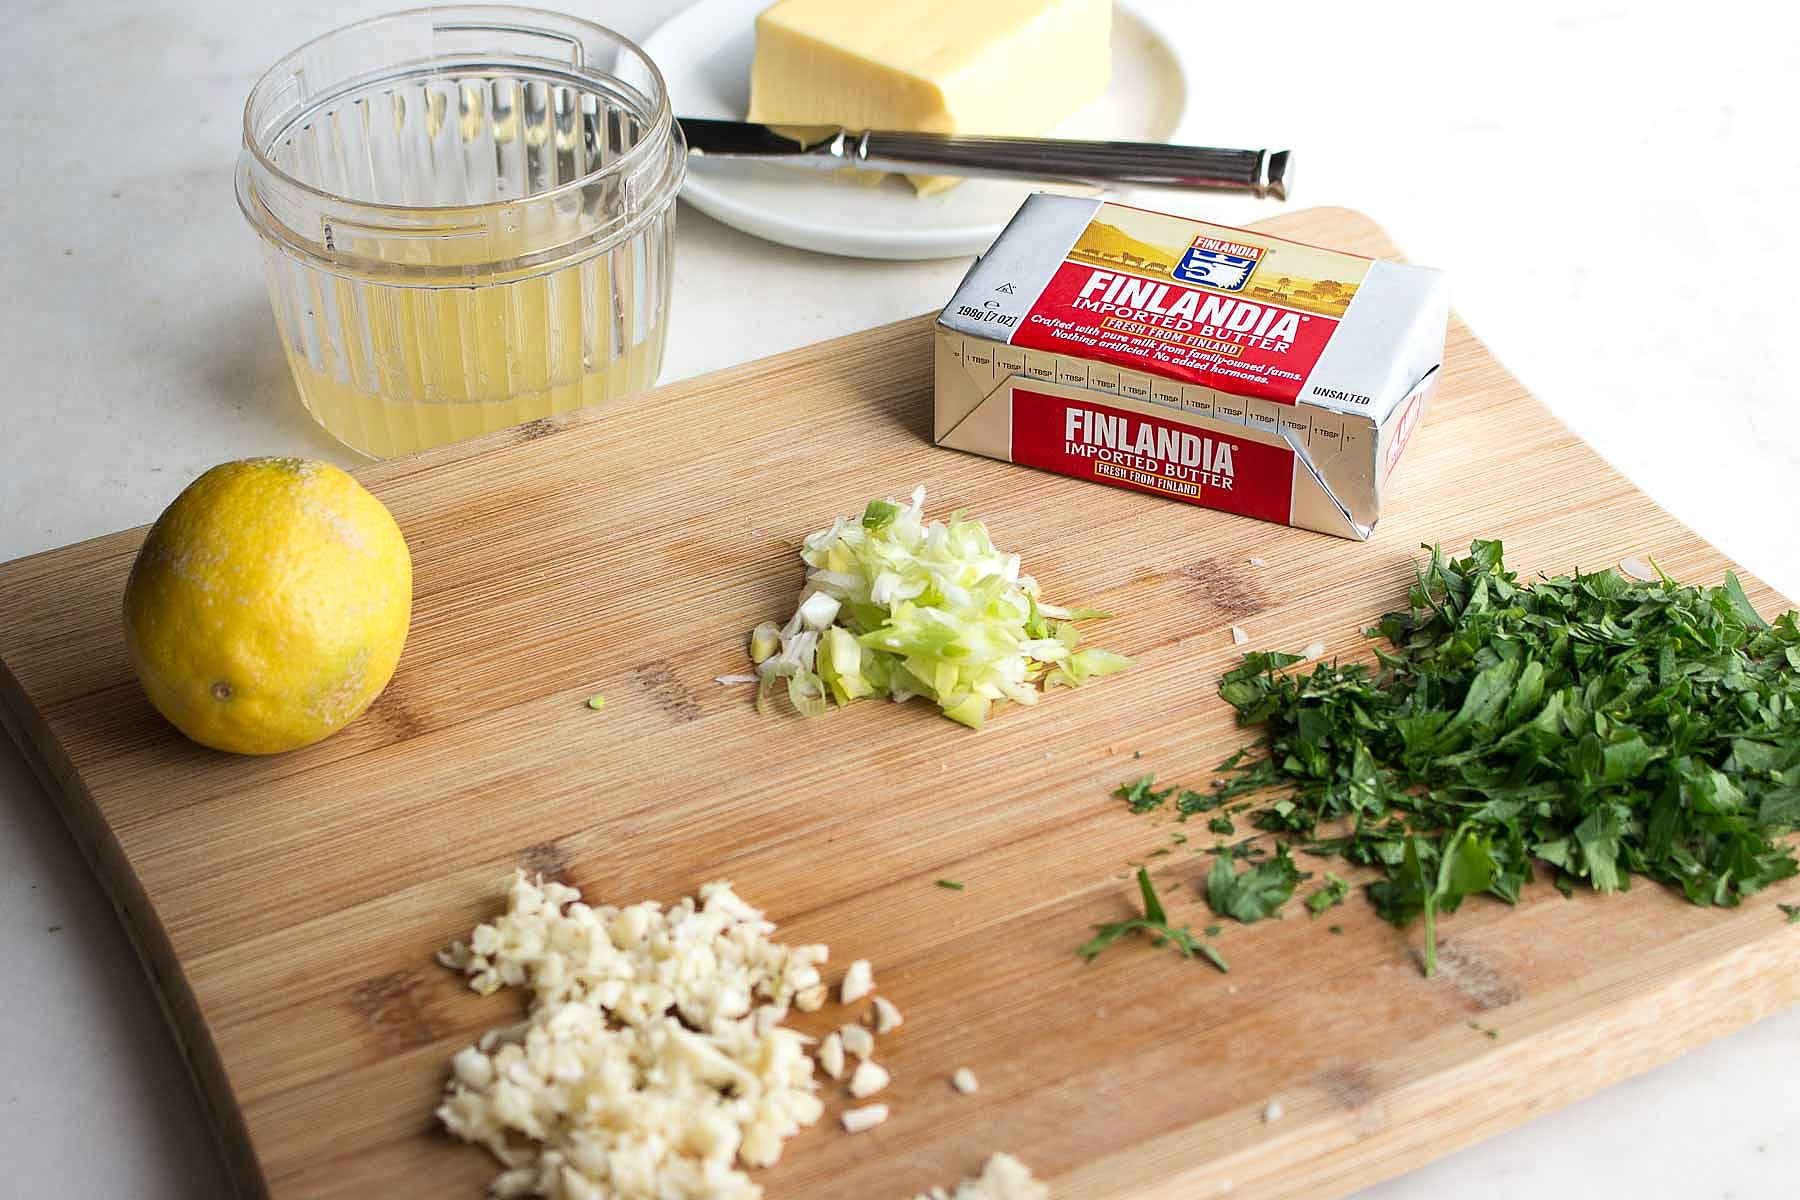 Ingredients for Shrimp Scampi with Finlandia Imported Butter.